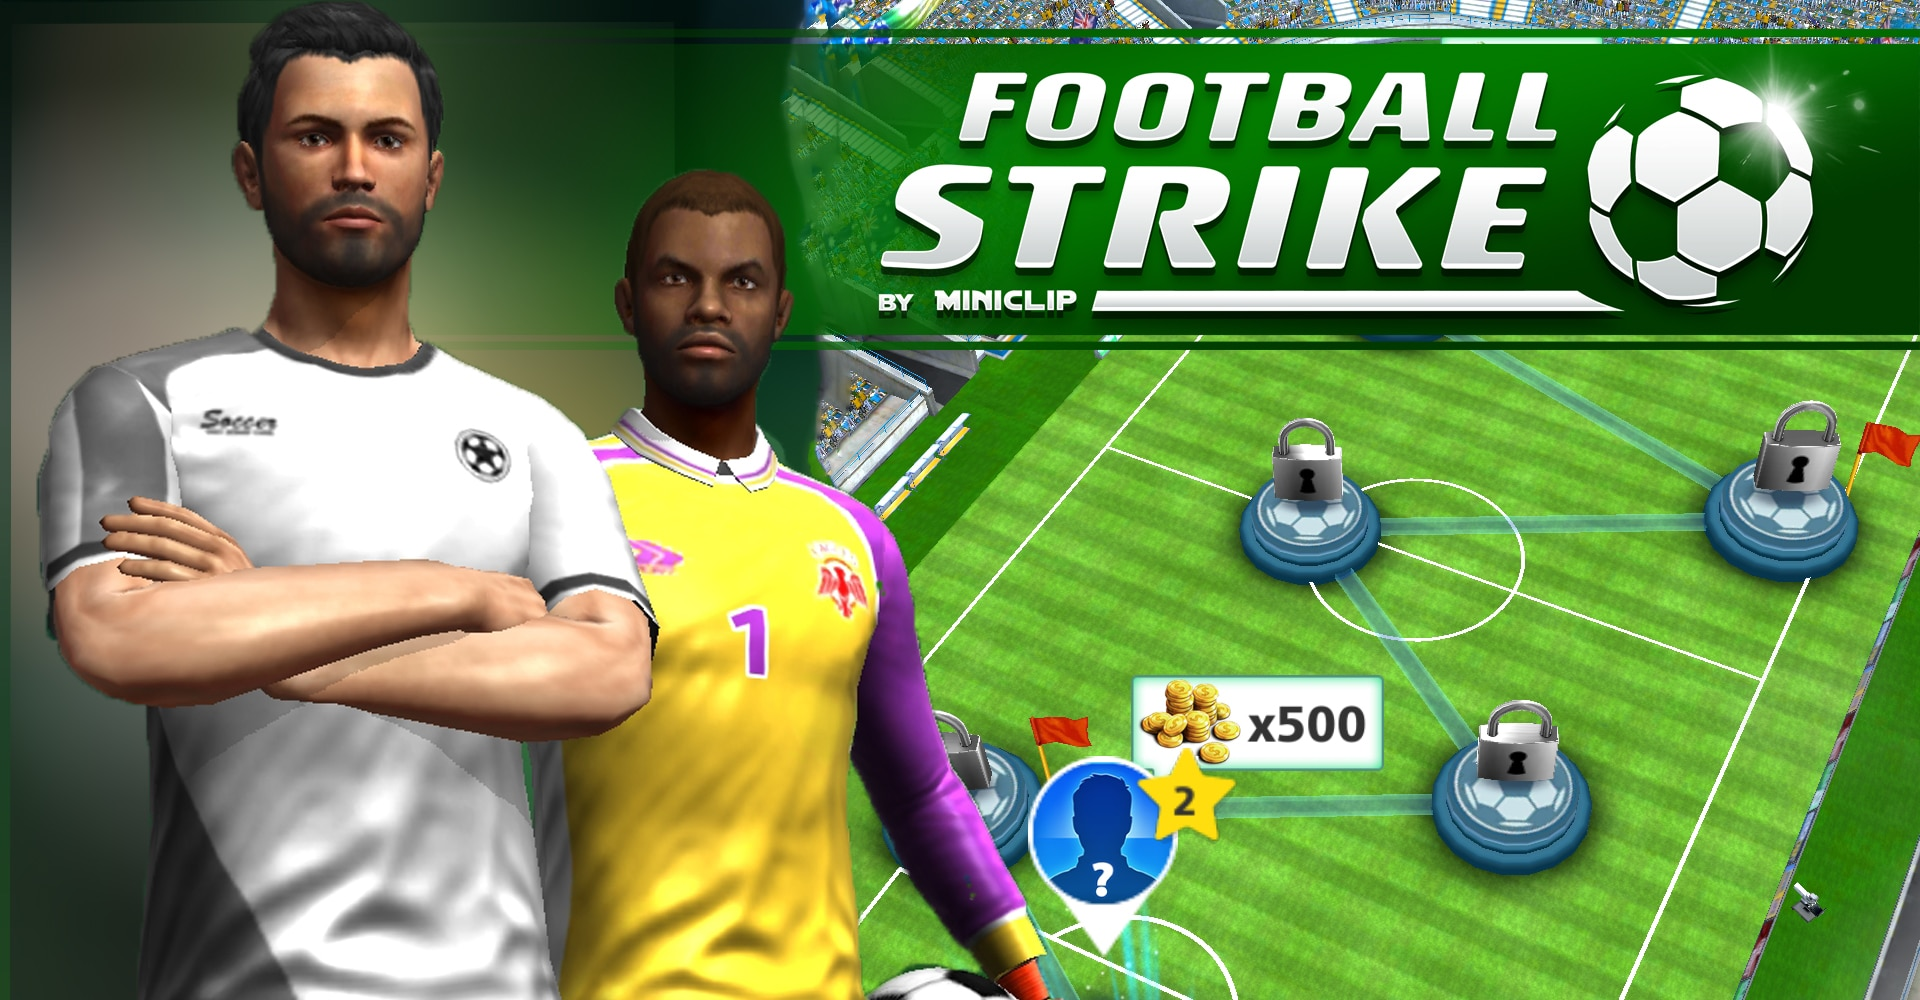 Download FOOTBALL STRIKE APK - For Android/iOS 7